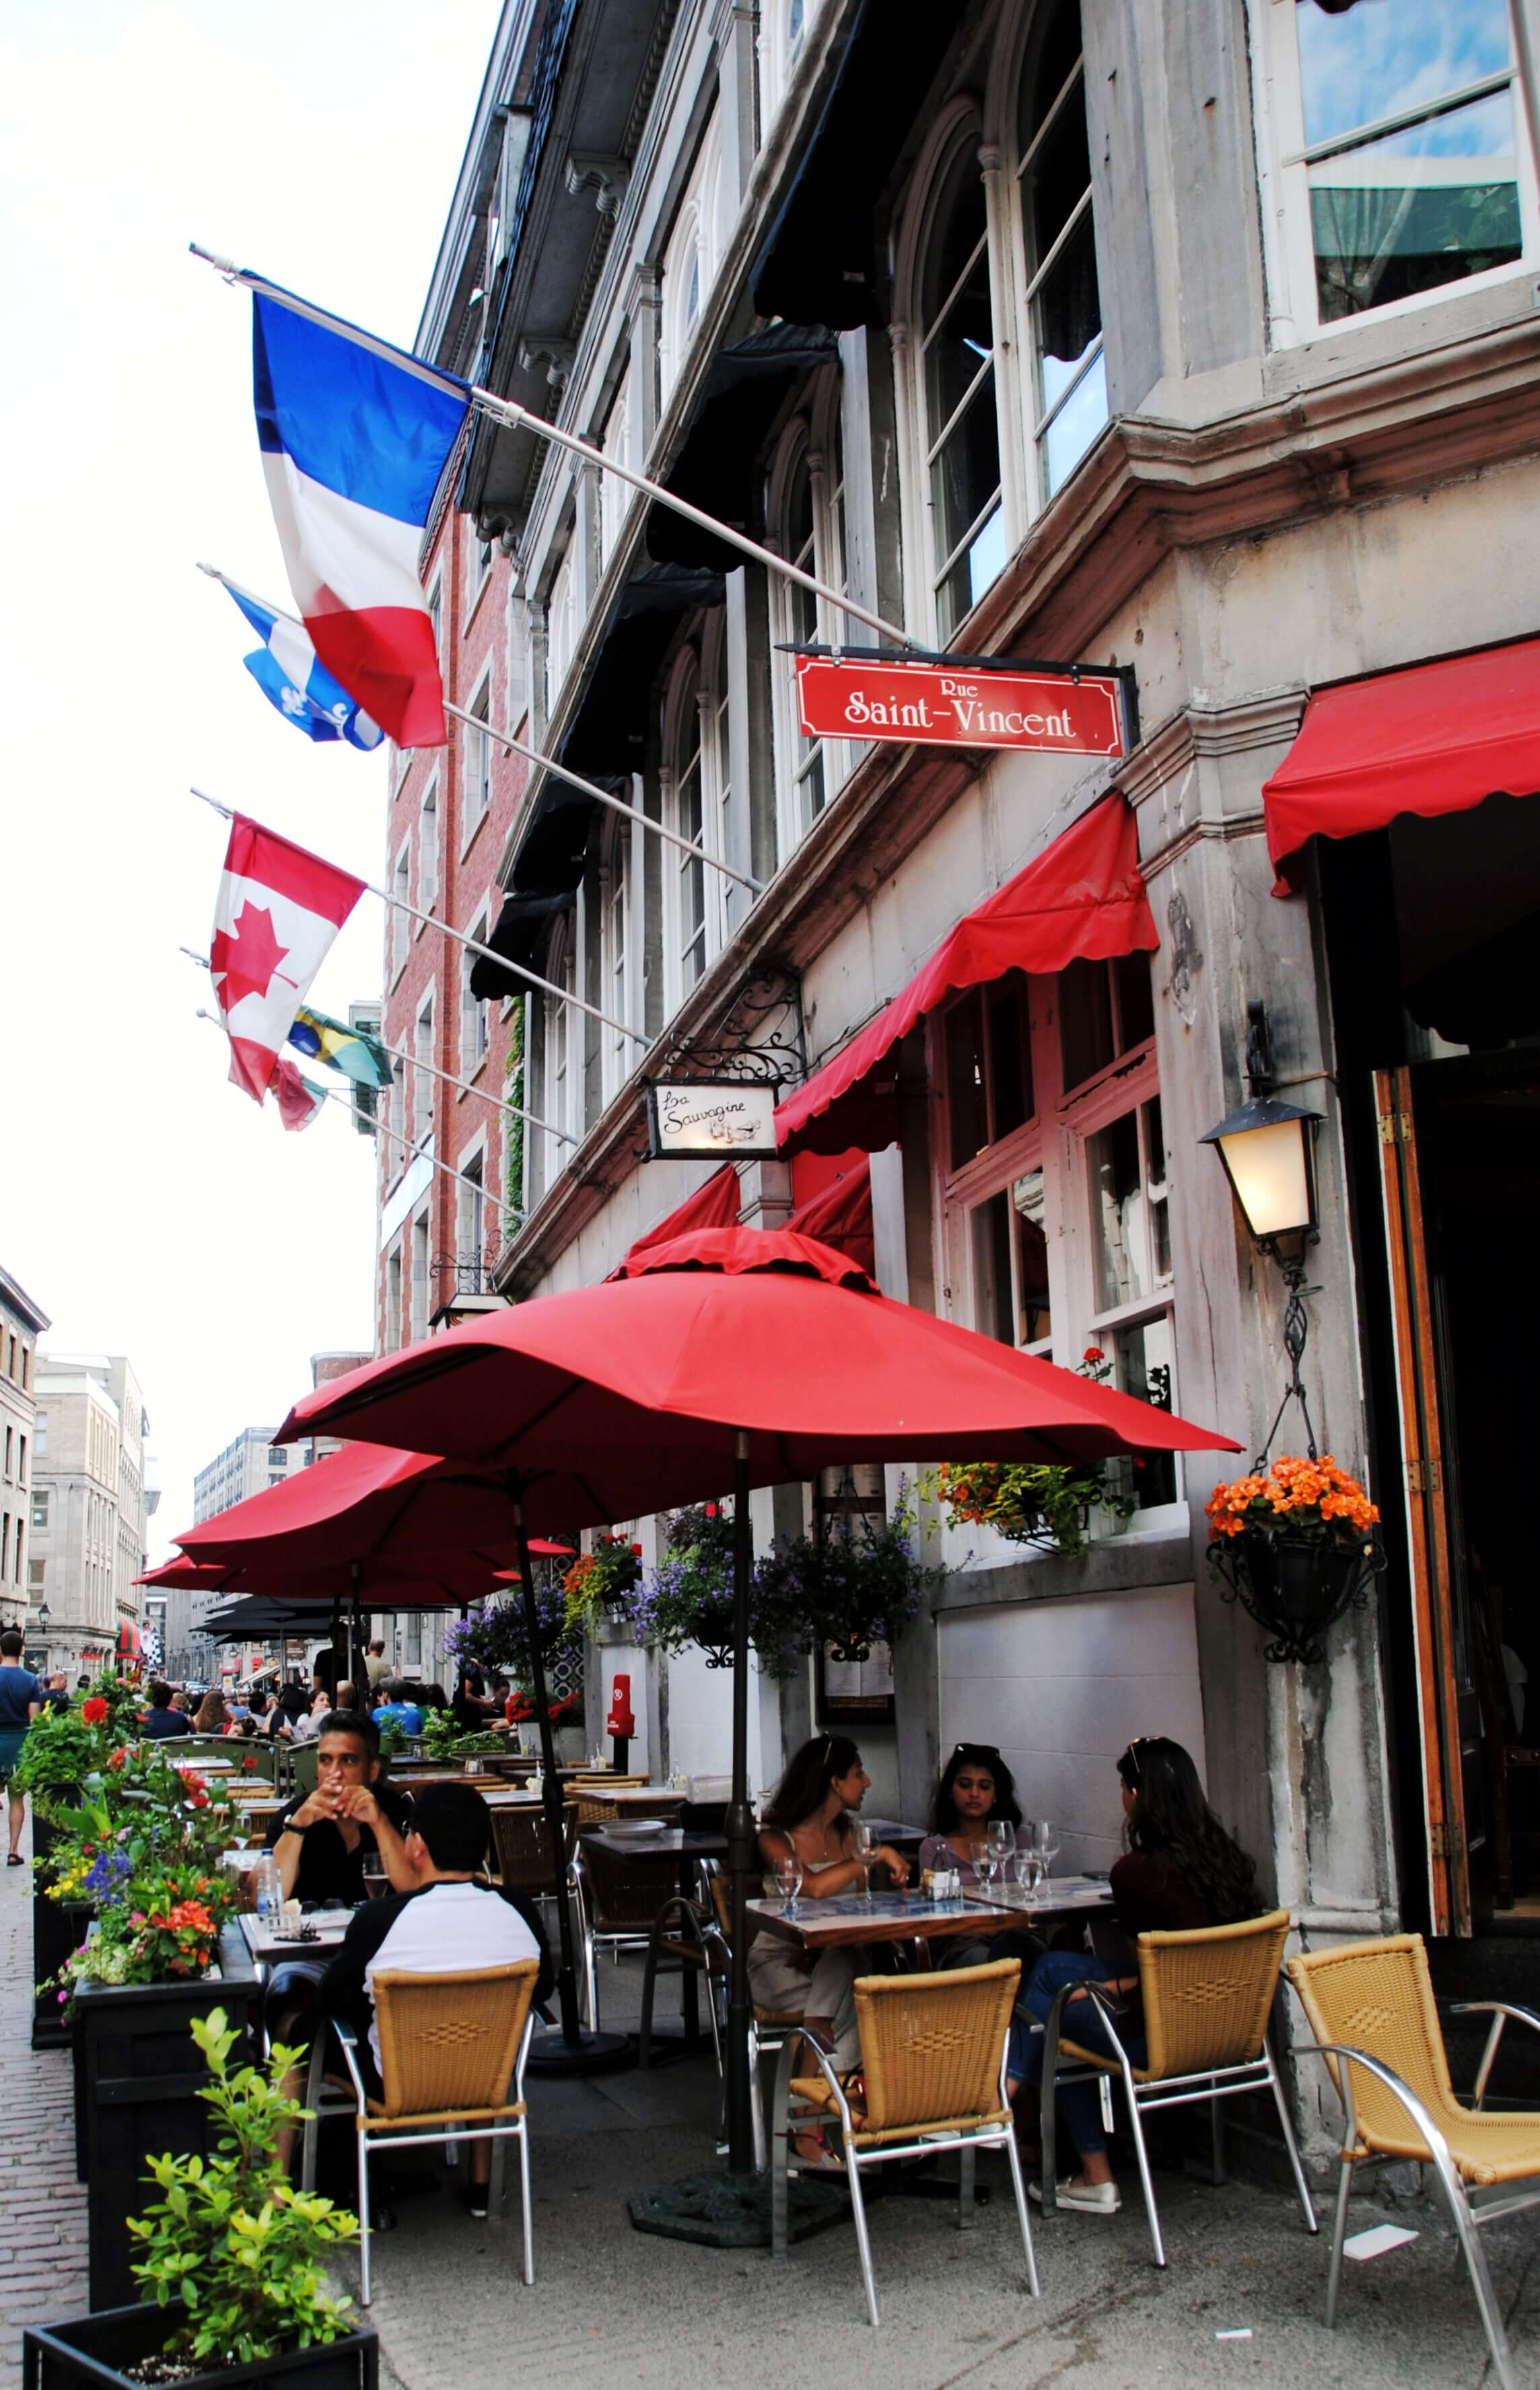 Rue Saint-Vincent Day in Montreal